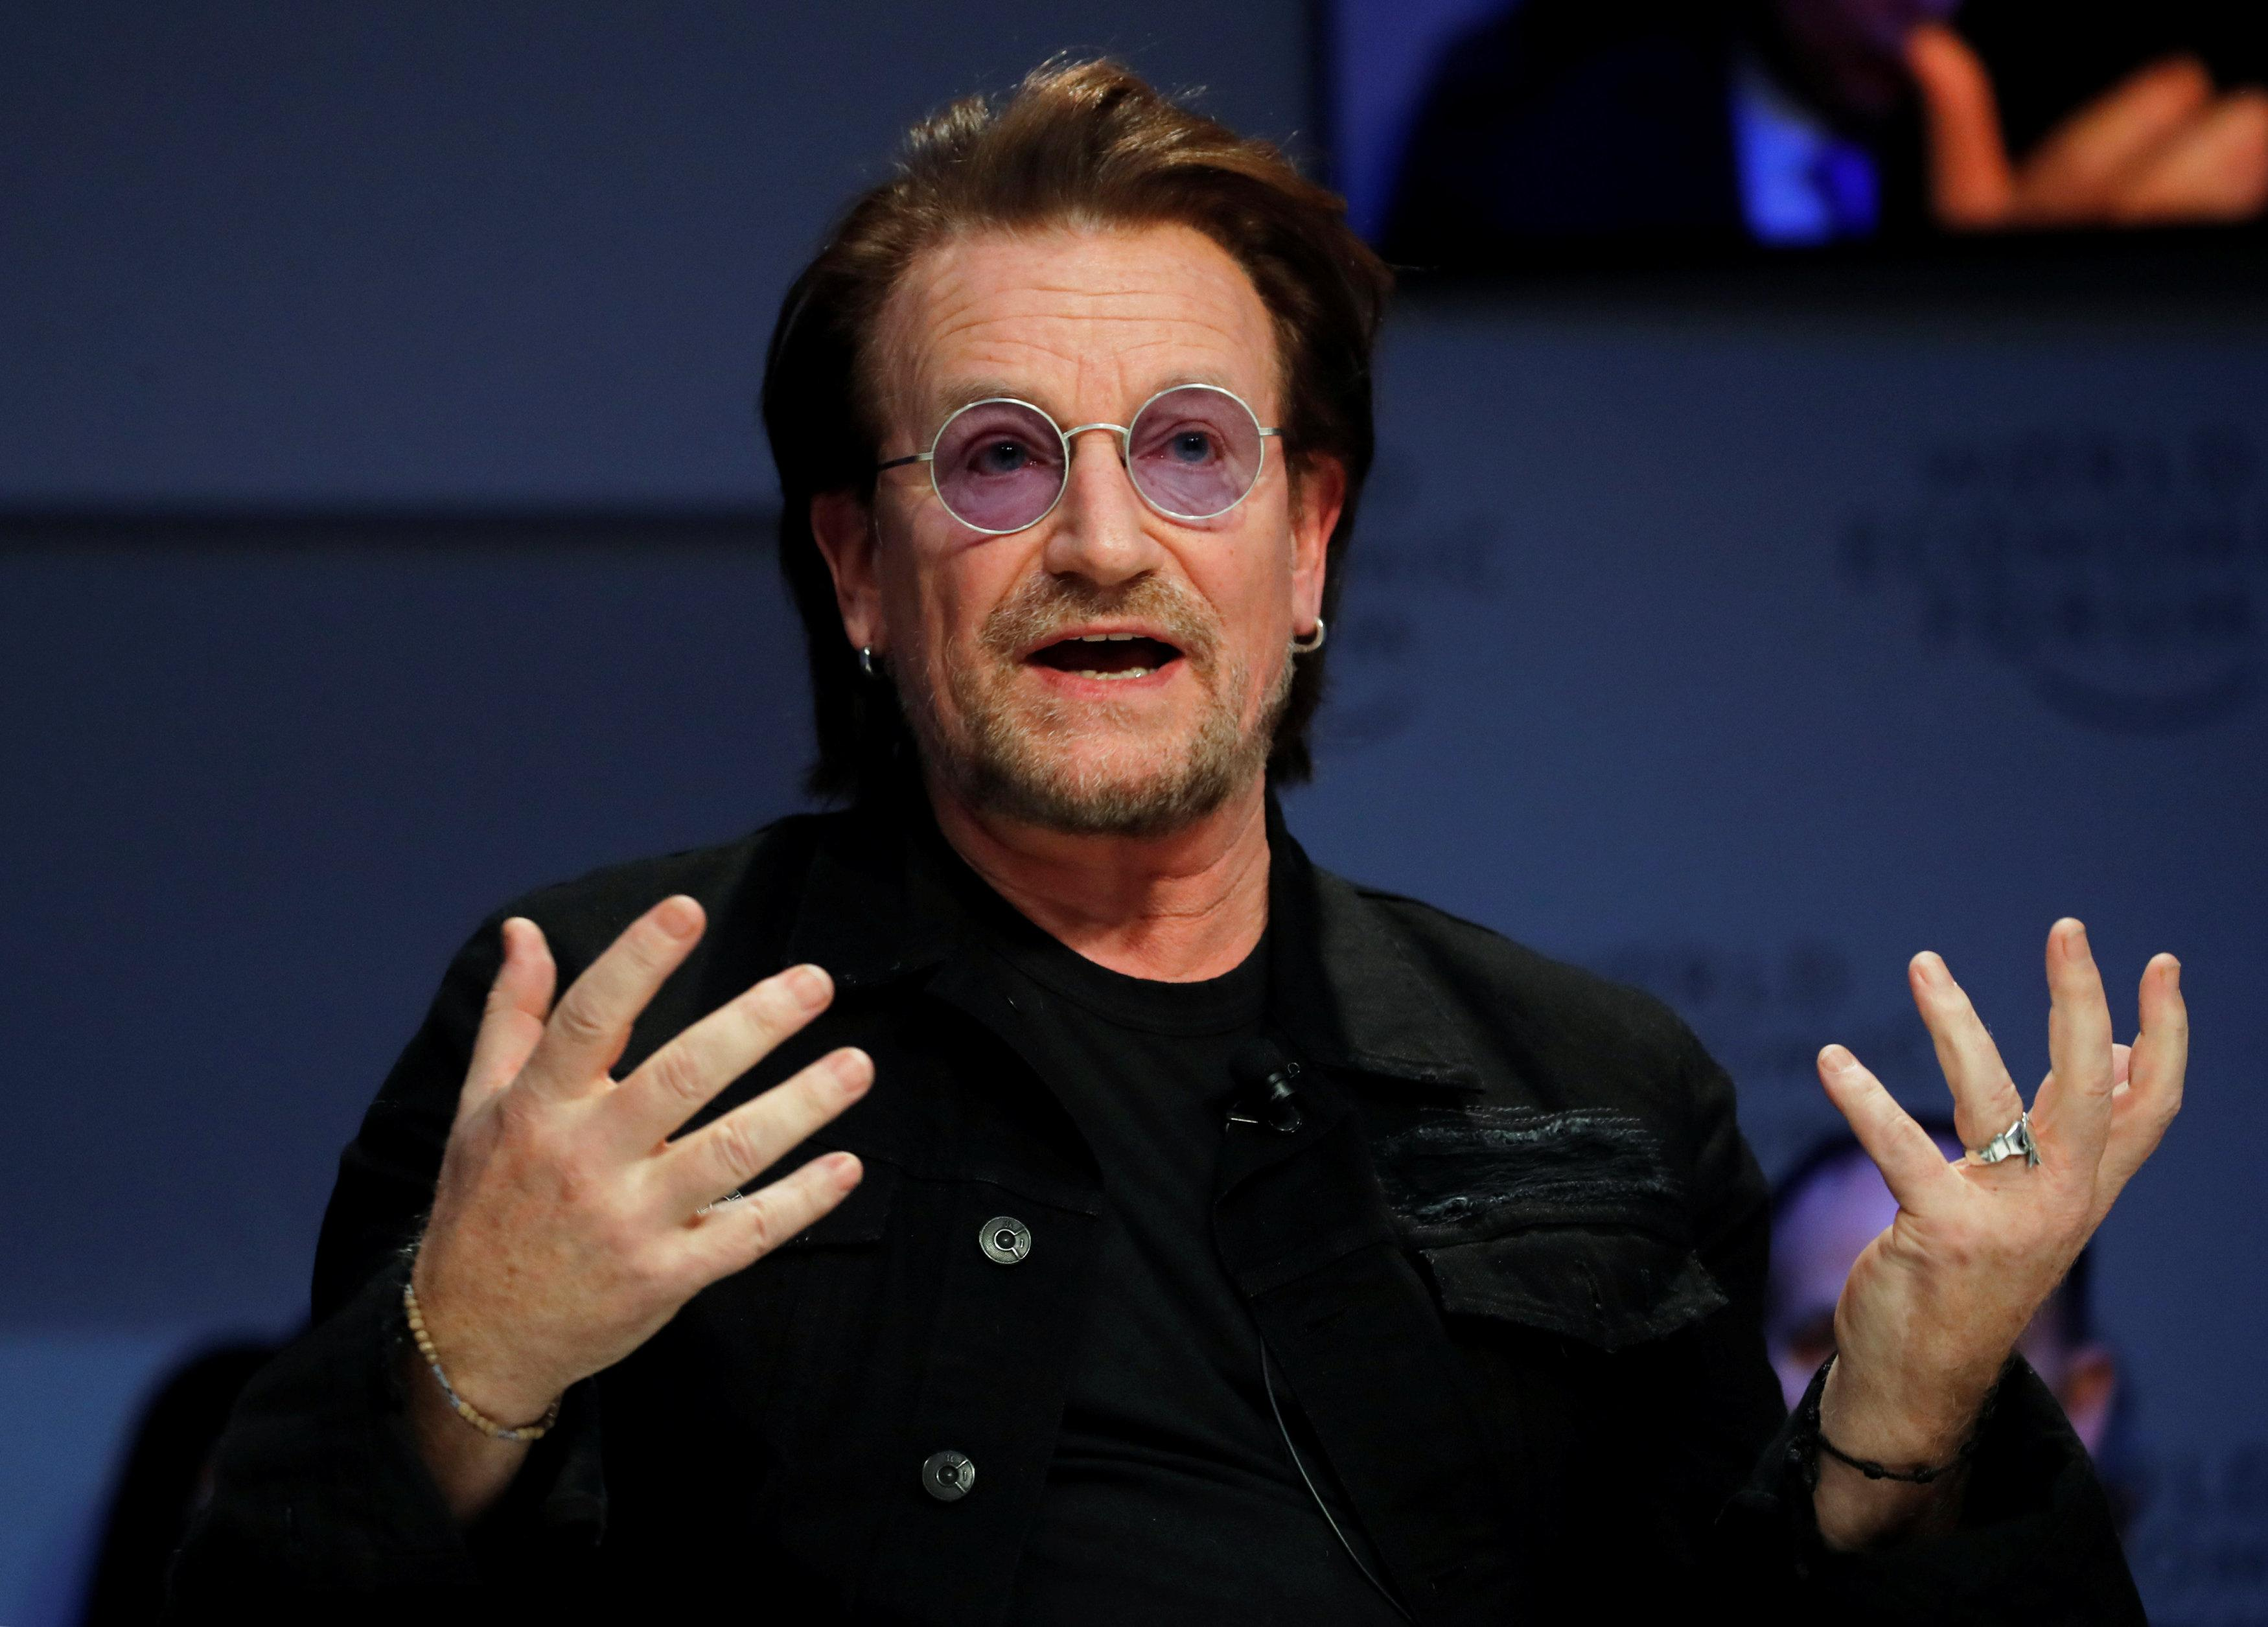 Bono: western world turning its back on HIV fight